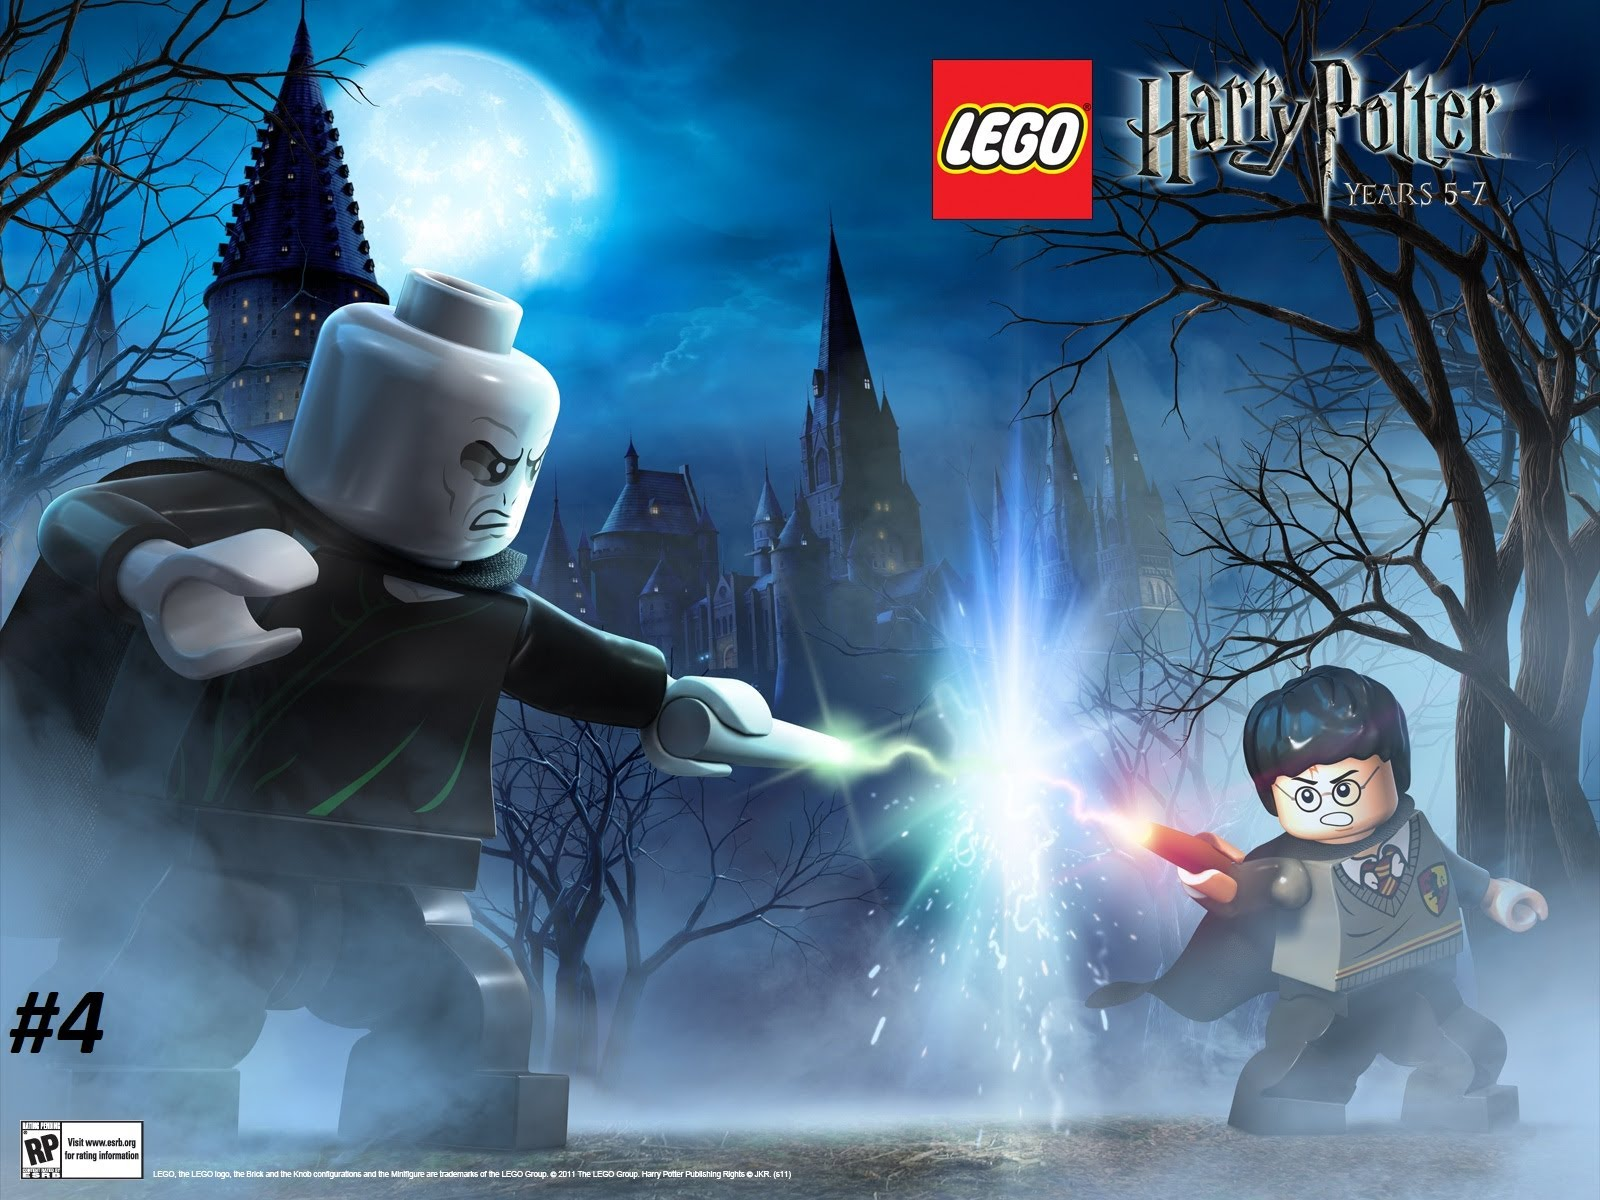 High Resolution Wallpaper | LEGO Harry Potter: Years 5-7 1600x1200 px